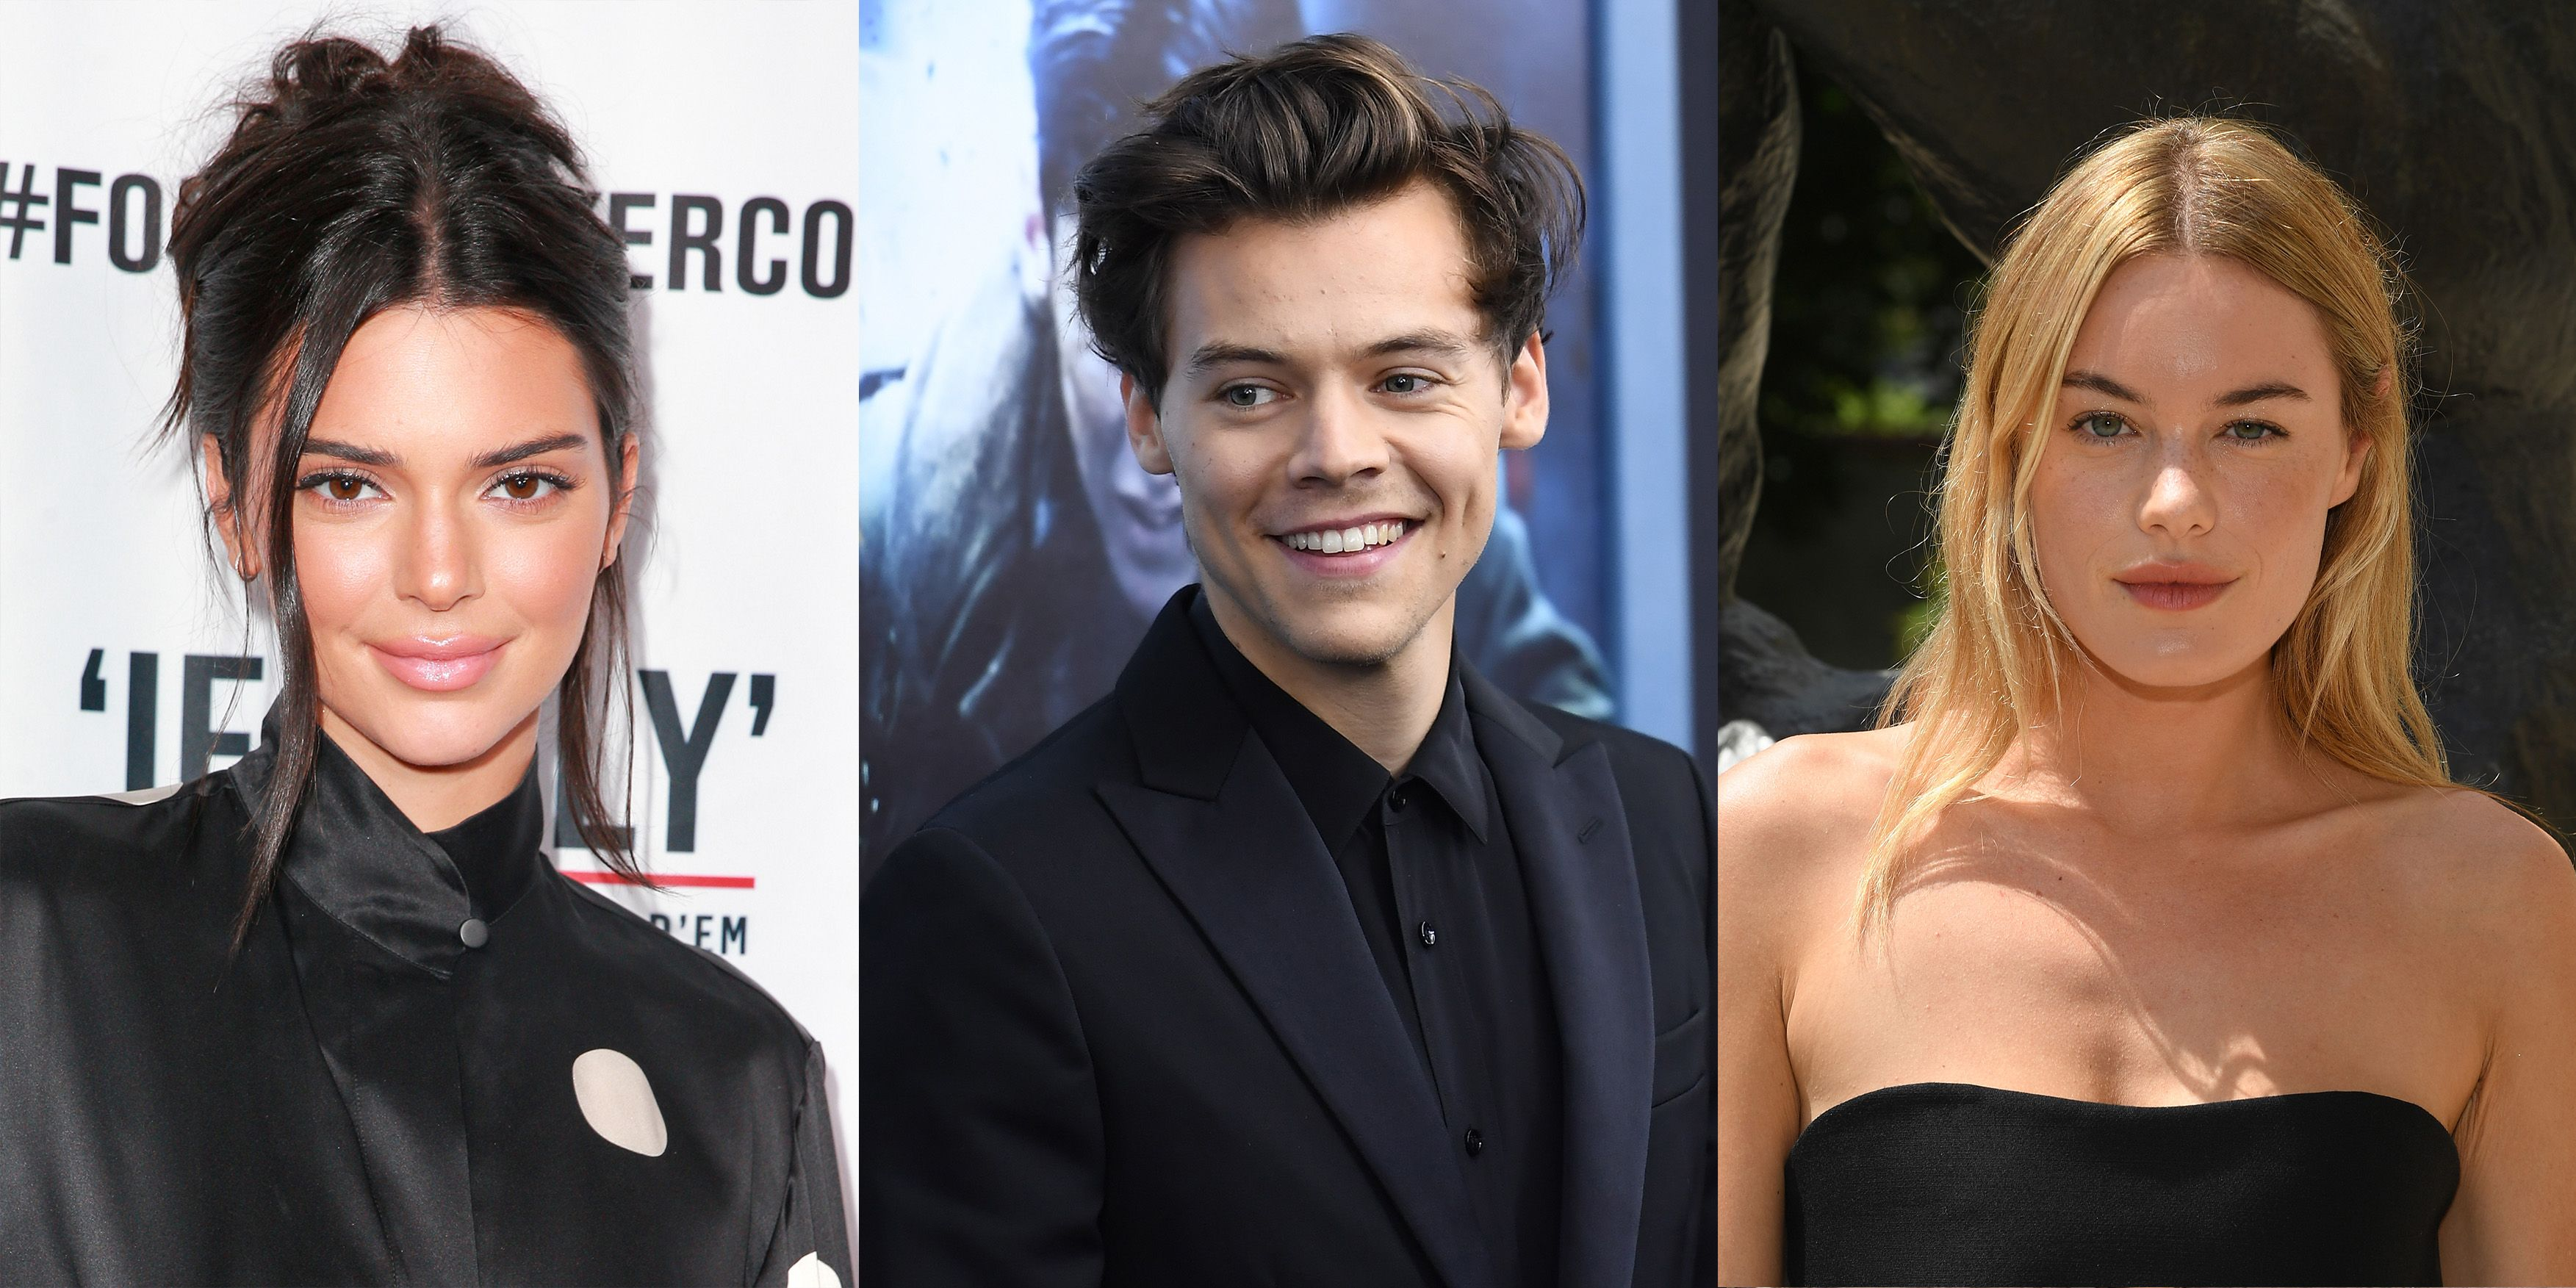 Harry styles dating history